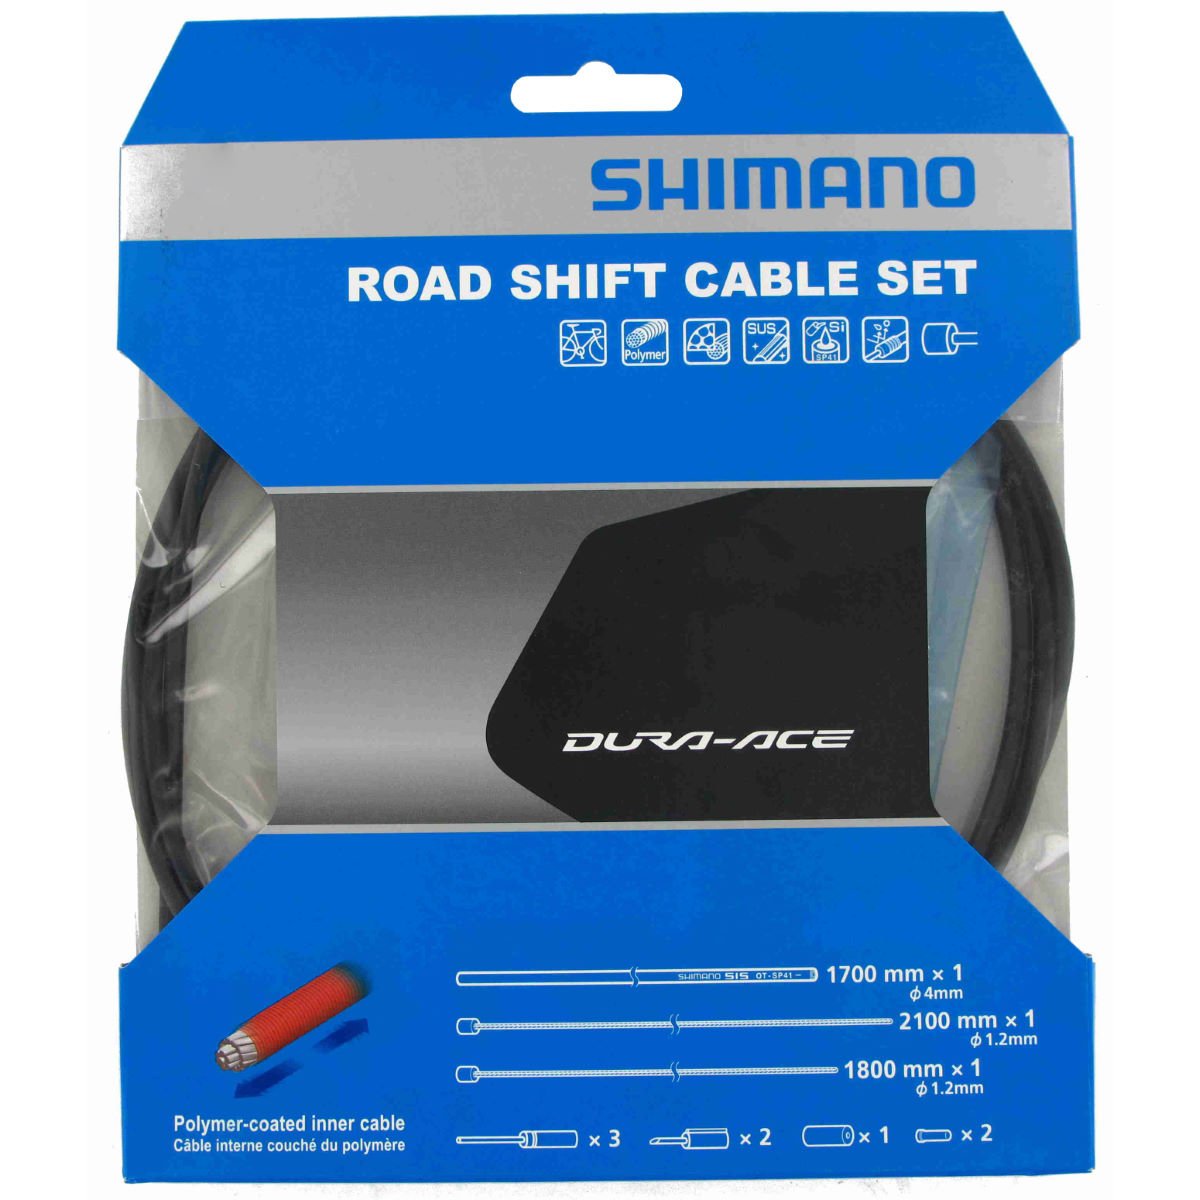 Shimano Road Gear Cable Set with Polymer Coated Inners